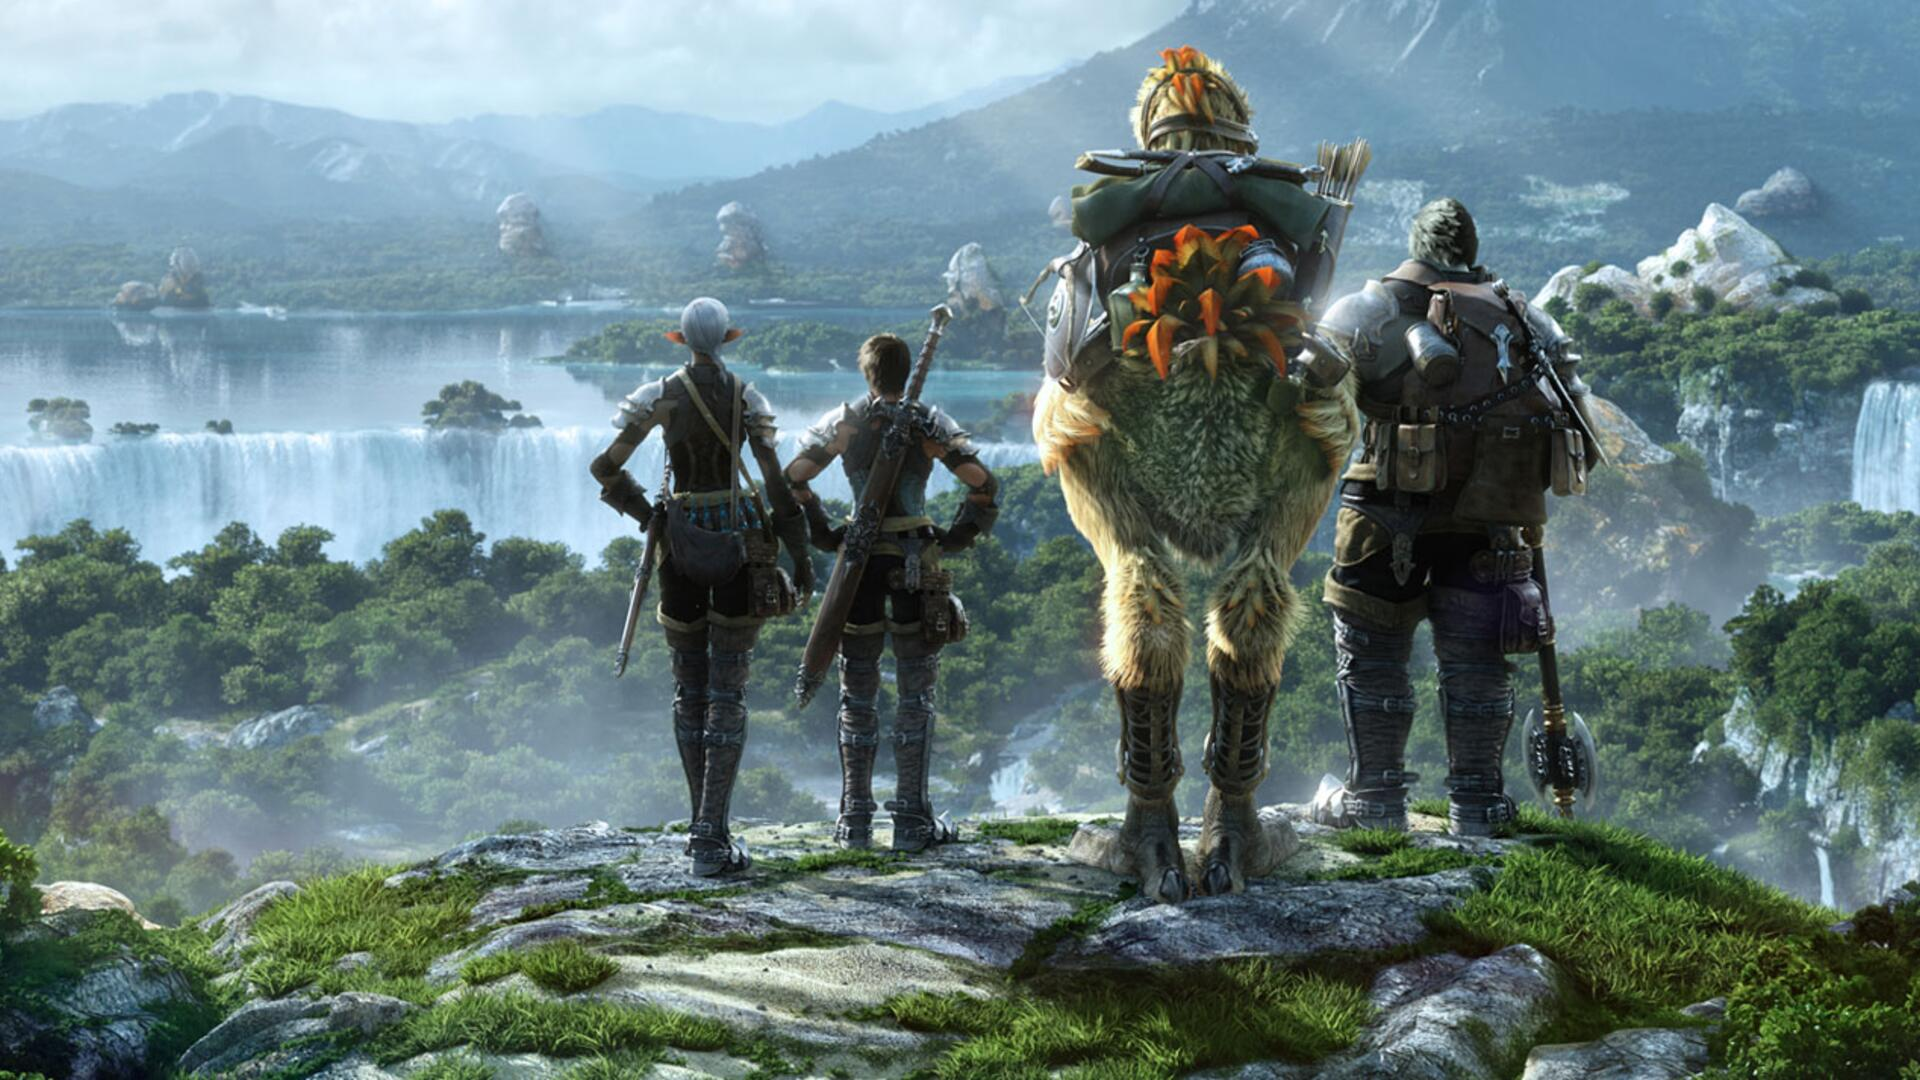 Final Fantasy XIV's First Expansion Will Be as Big as the Base Game